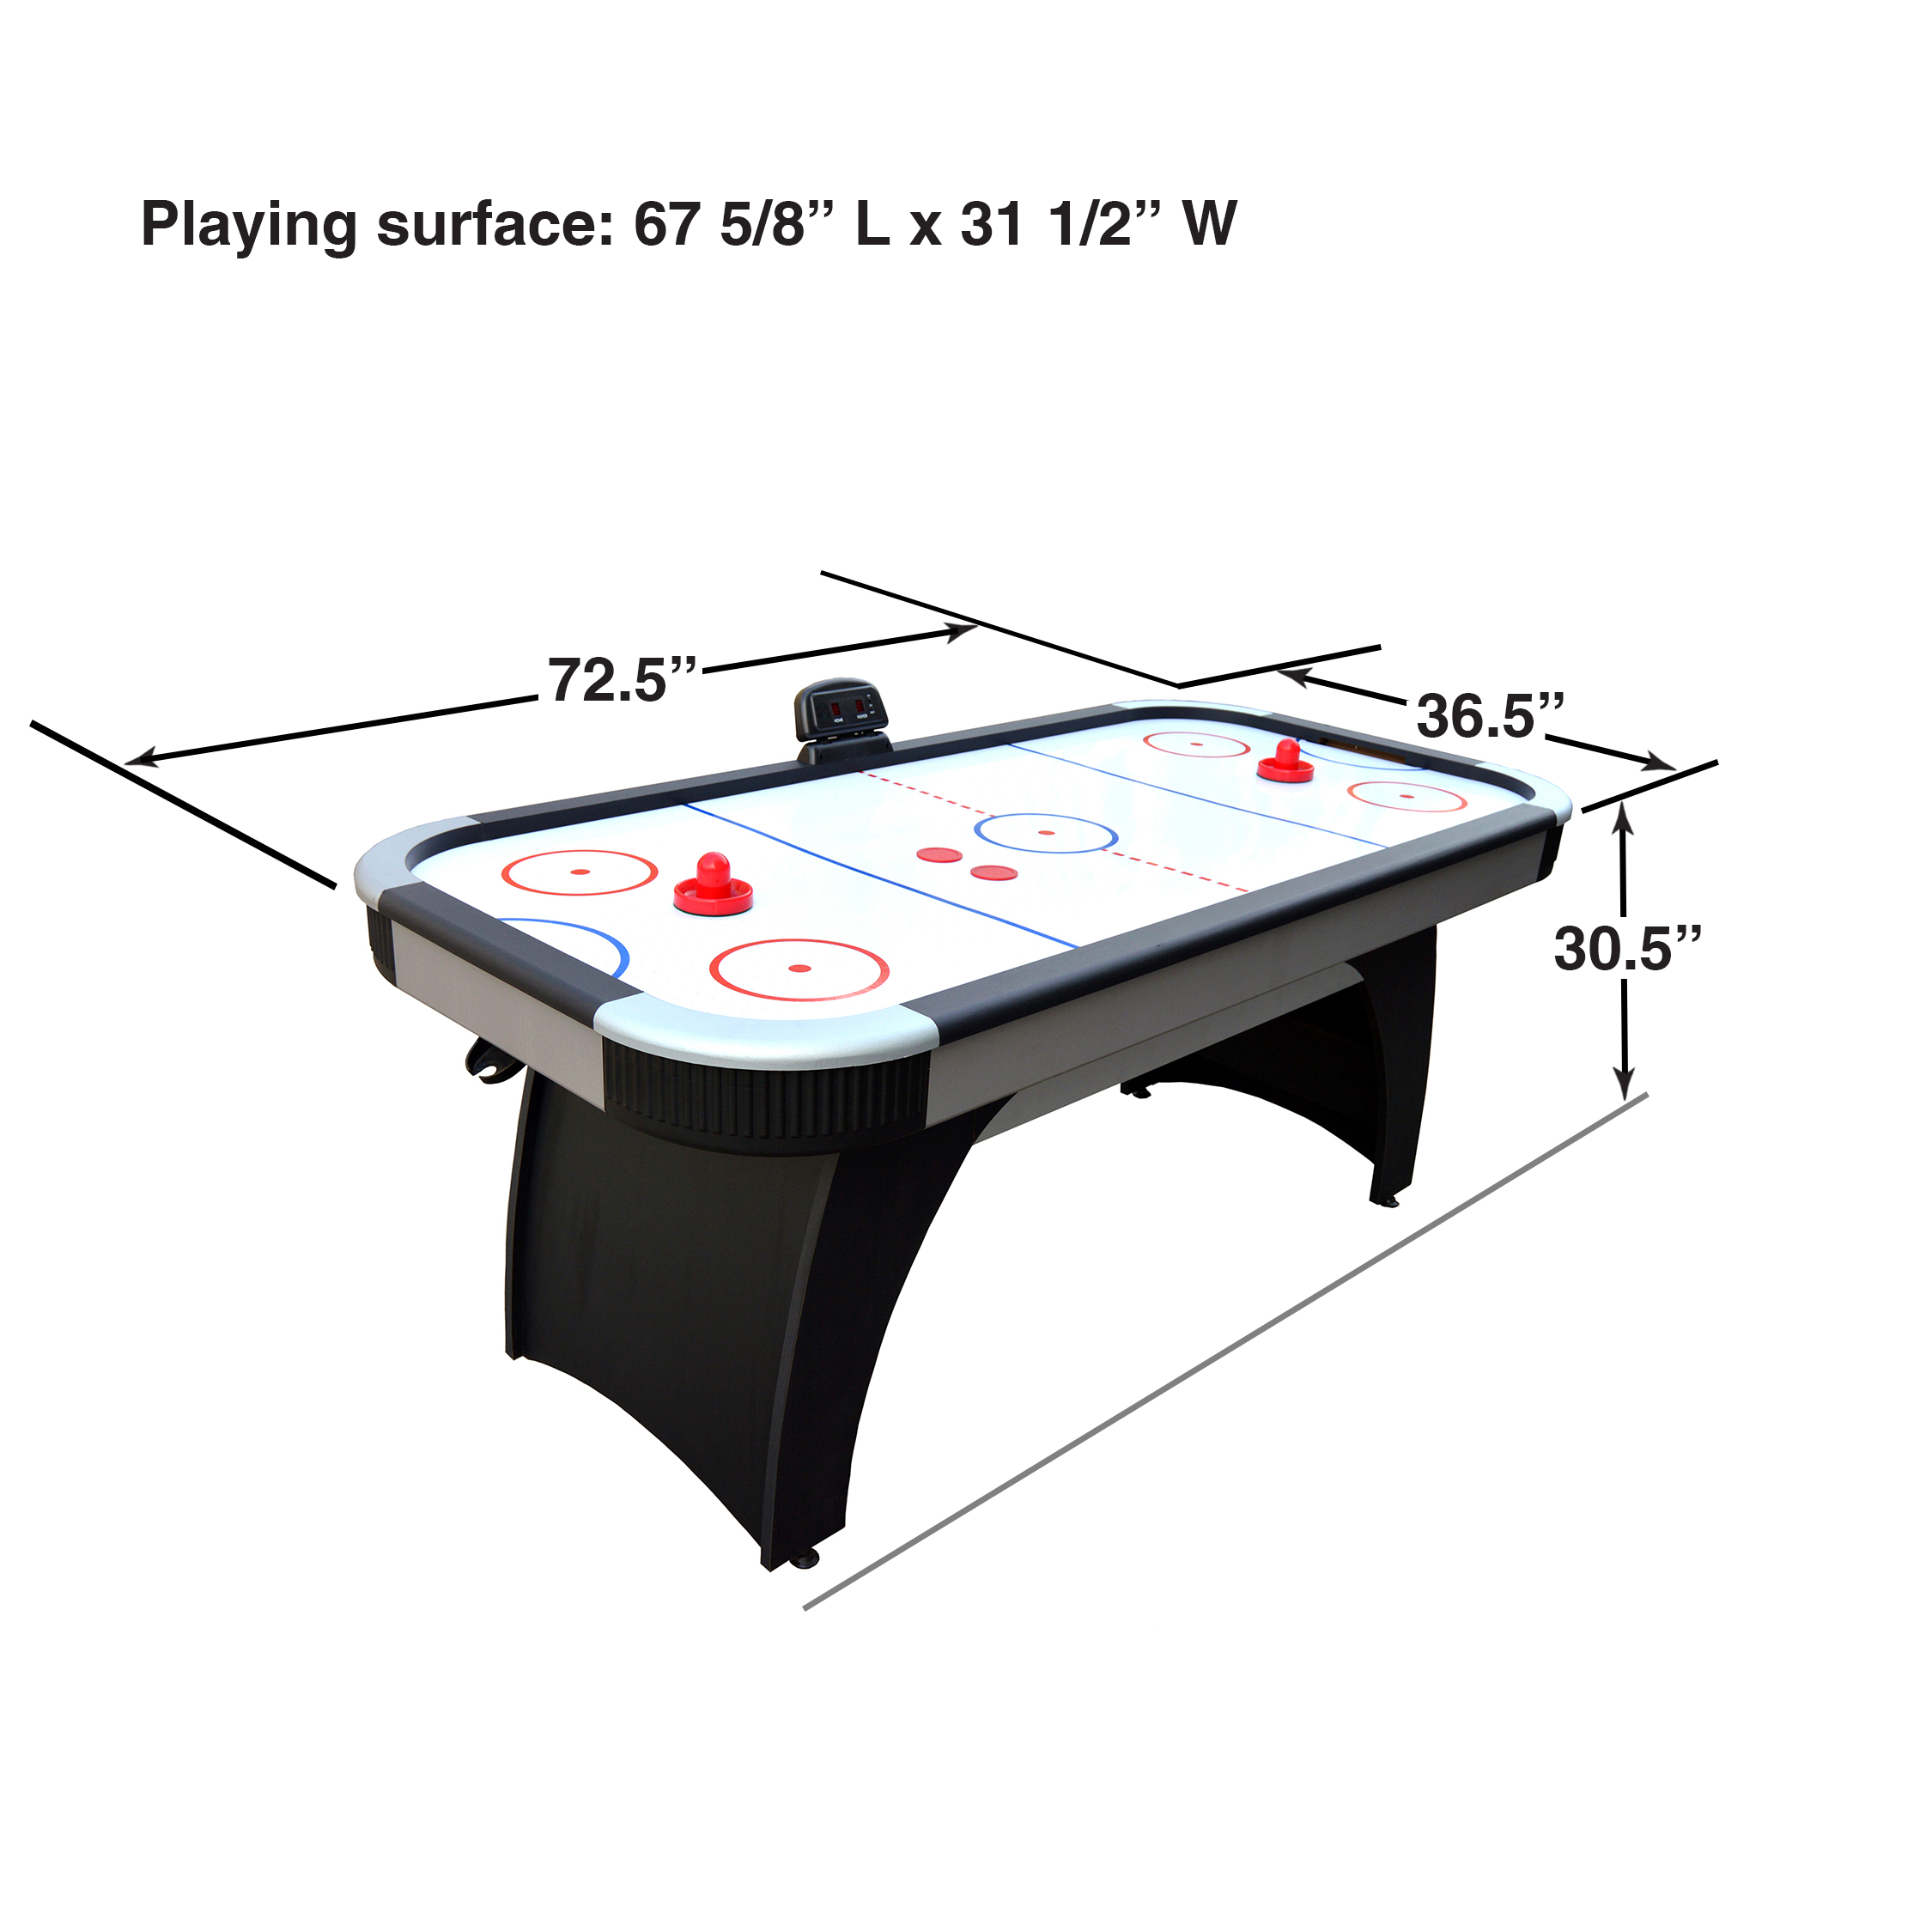 Hathaway Silverstreak 6 Foot Air Hockey Game Table For Family Game Rooms With Electronic Scoring